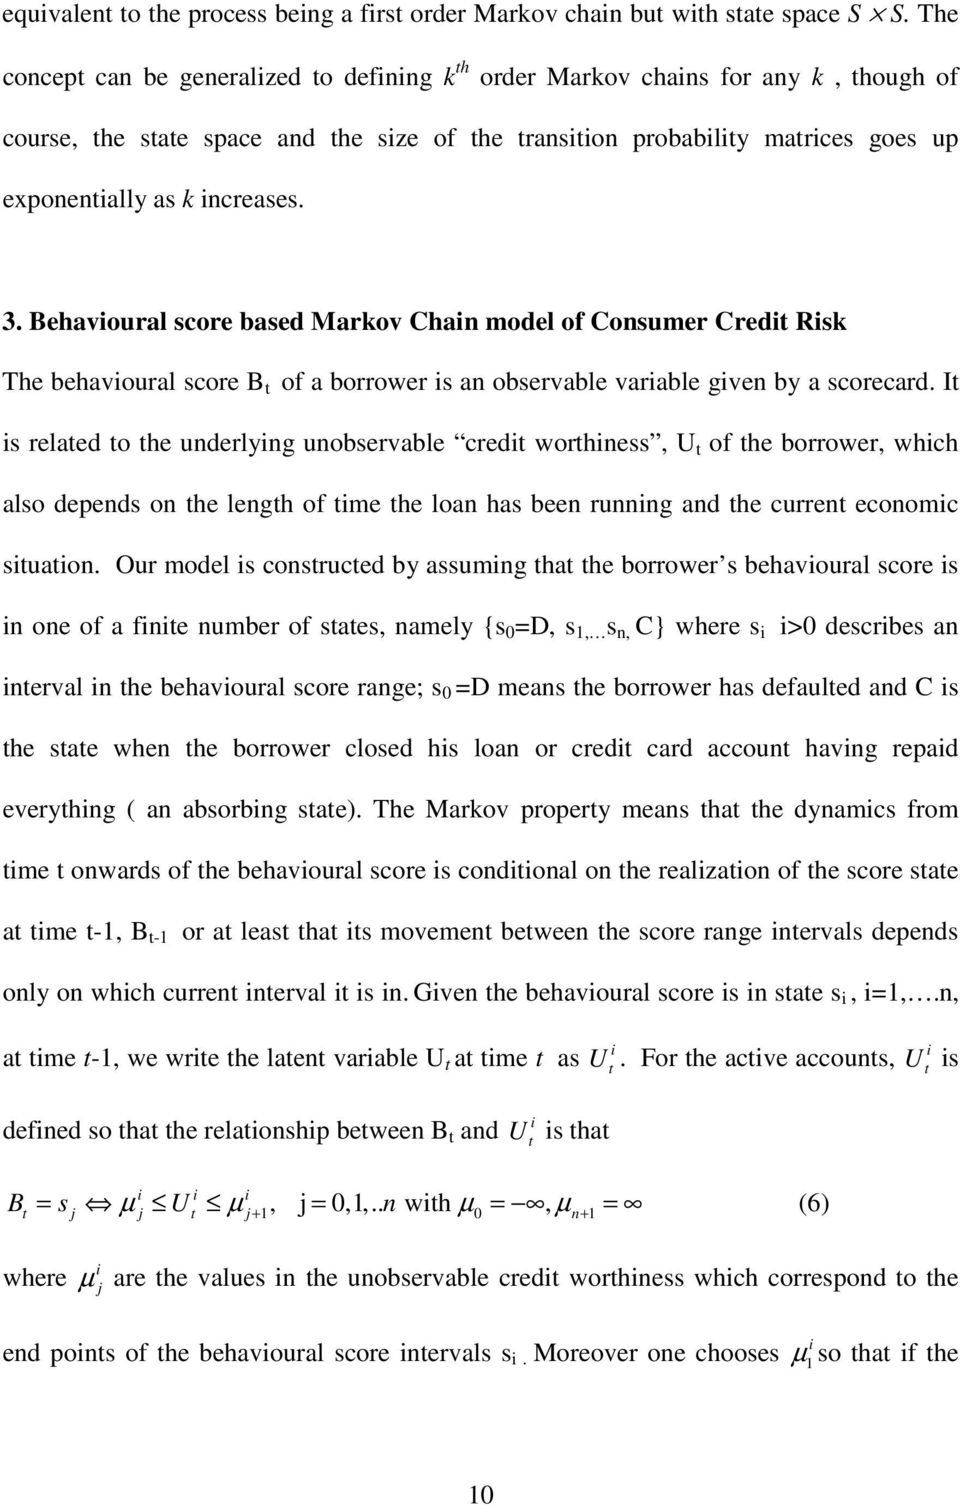 Behavoural score based Markov Chan model of Consumer Credt Rsk The behavoural score B t of a borrower s an observable varable gven by a scorecard.